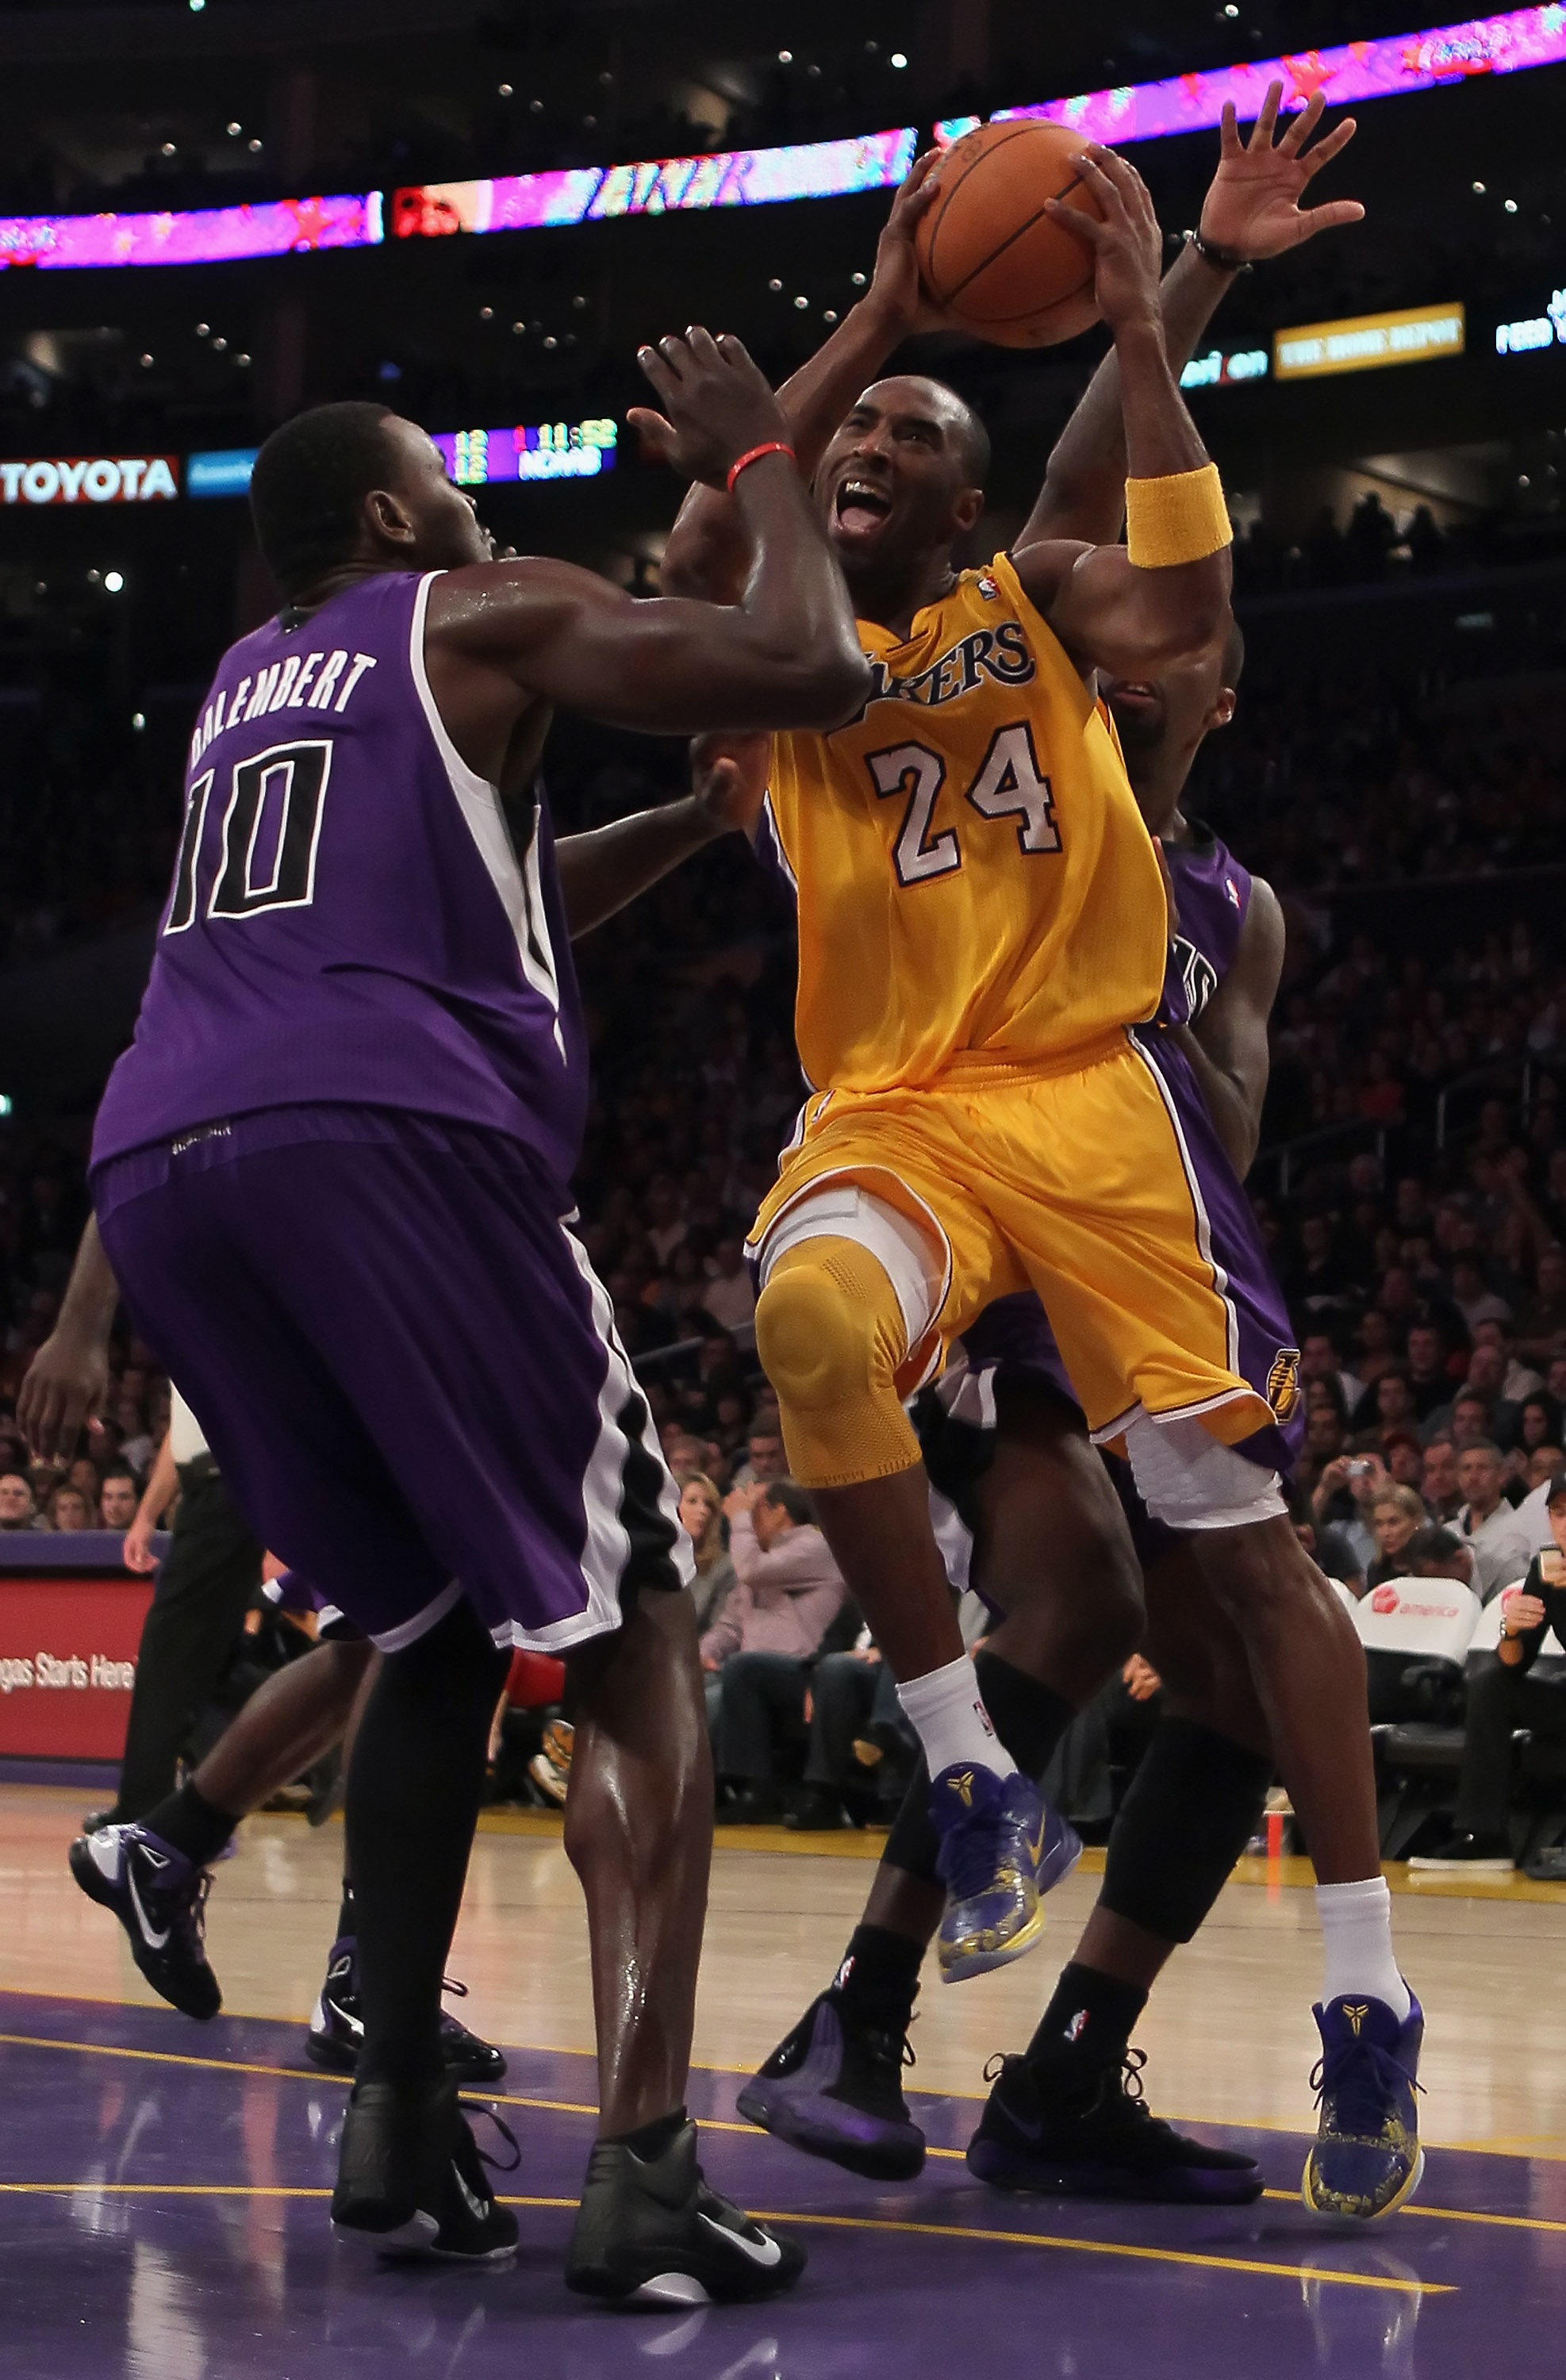 LOS ANGELES, CA - DECEMBER 03:  Kobe Bryant #24 of the Los Angeles Lakers drives to the basket while being defended by Samuel Dalembert #10 of the Sacramento Kings during the first half at Staples Center on December 3, 2010 in Los Angeles, California. The